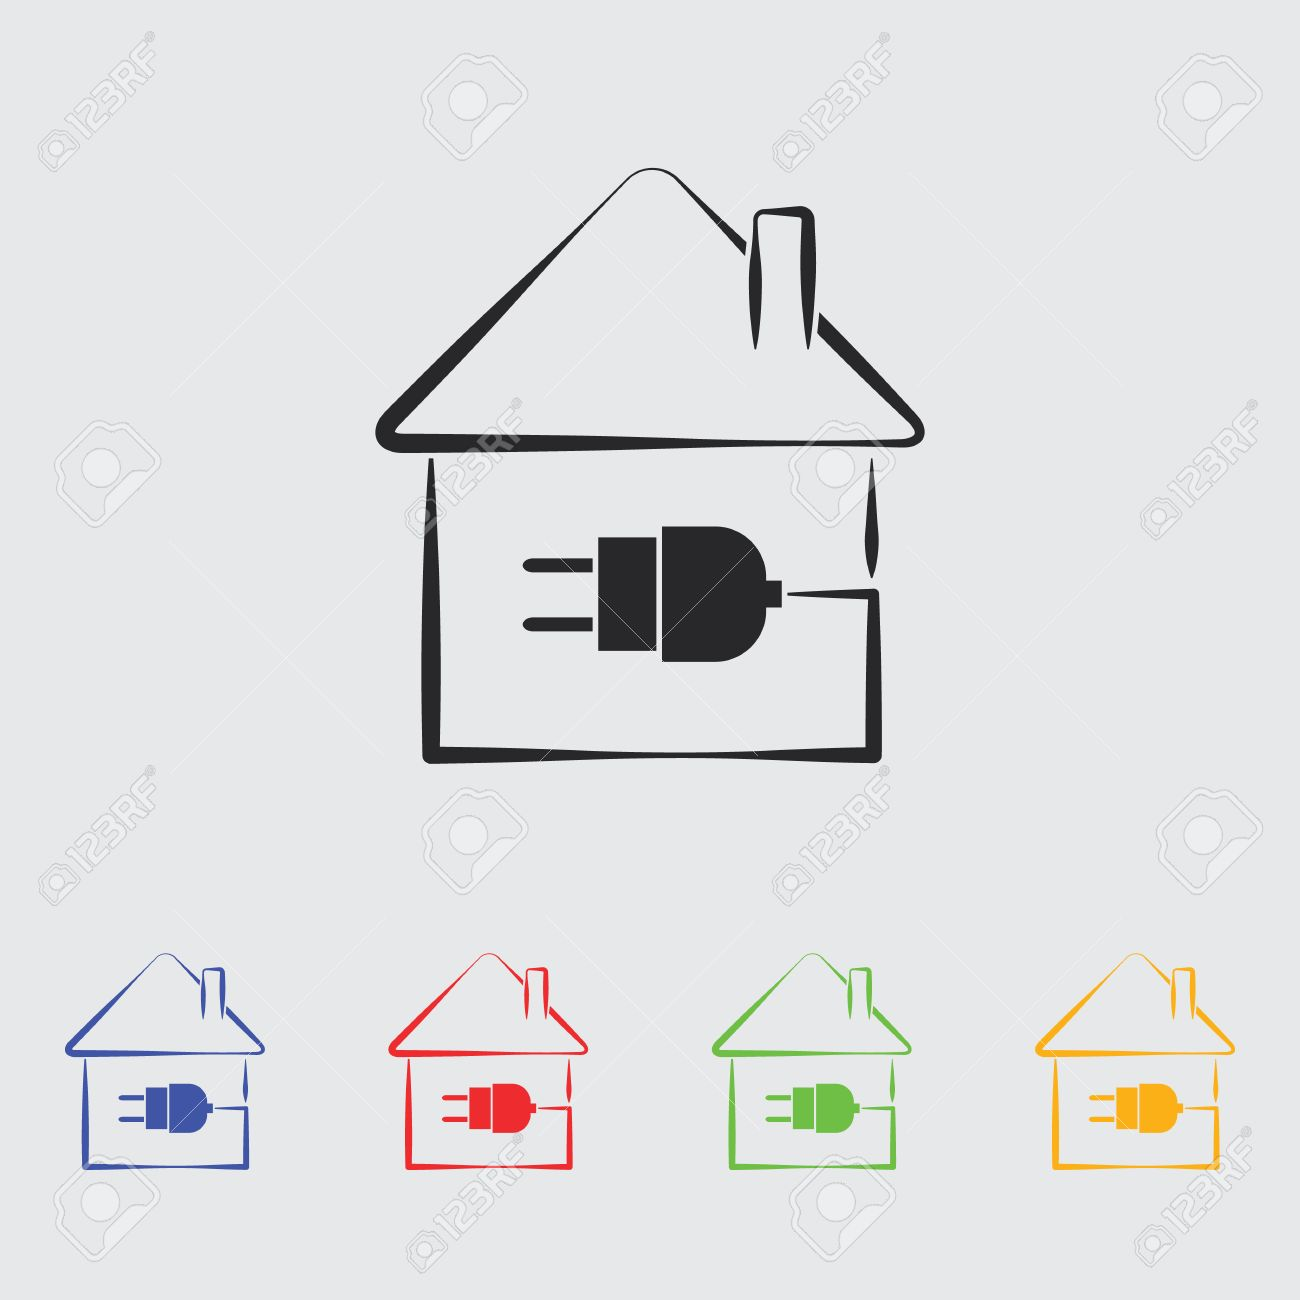 Electric House Plug Icon. Royalty Free Cliparts, Vectors, And Stock ...